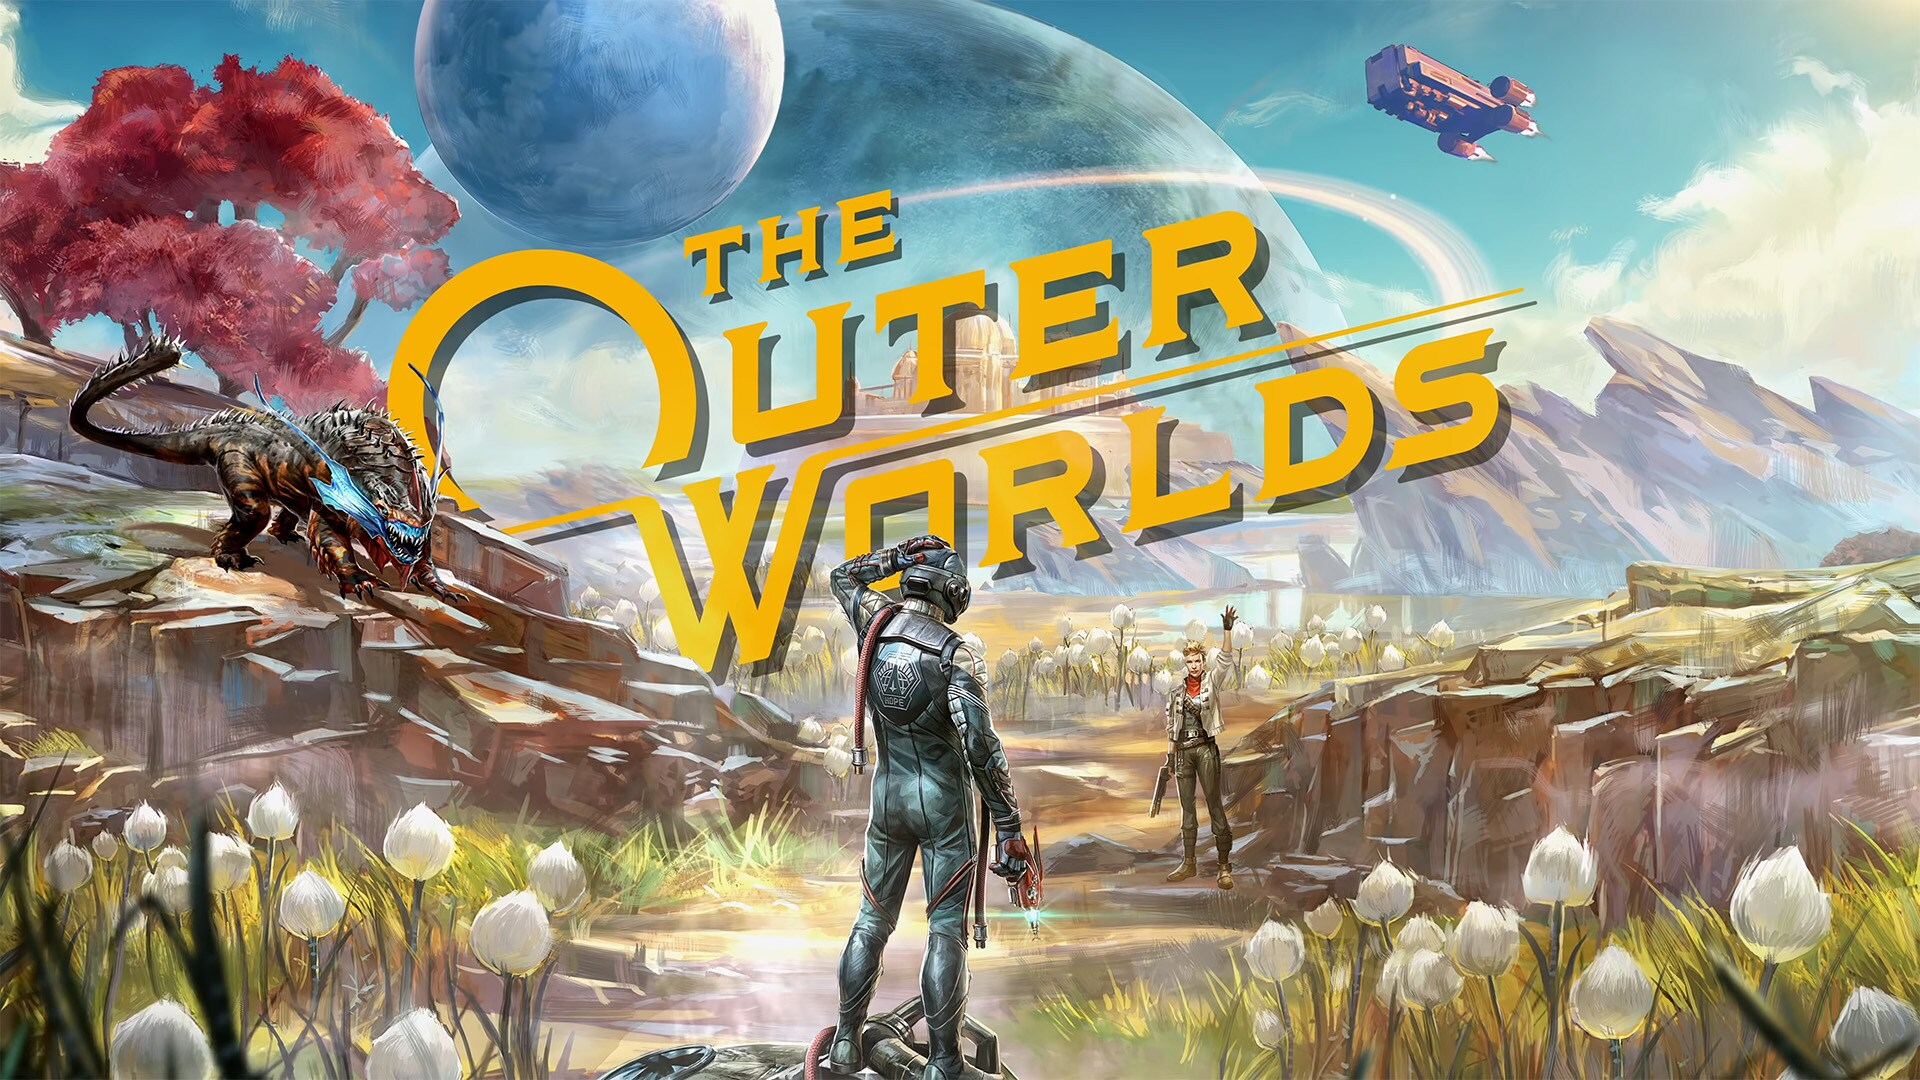 THE OUTER WORLDS EPIC + WARRANTY